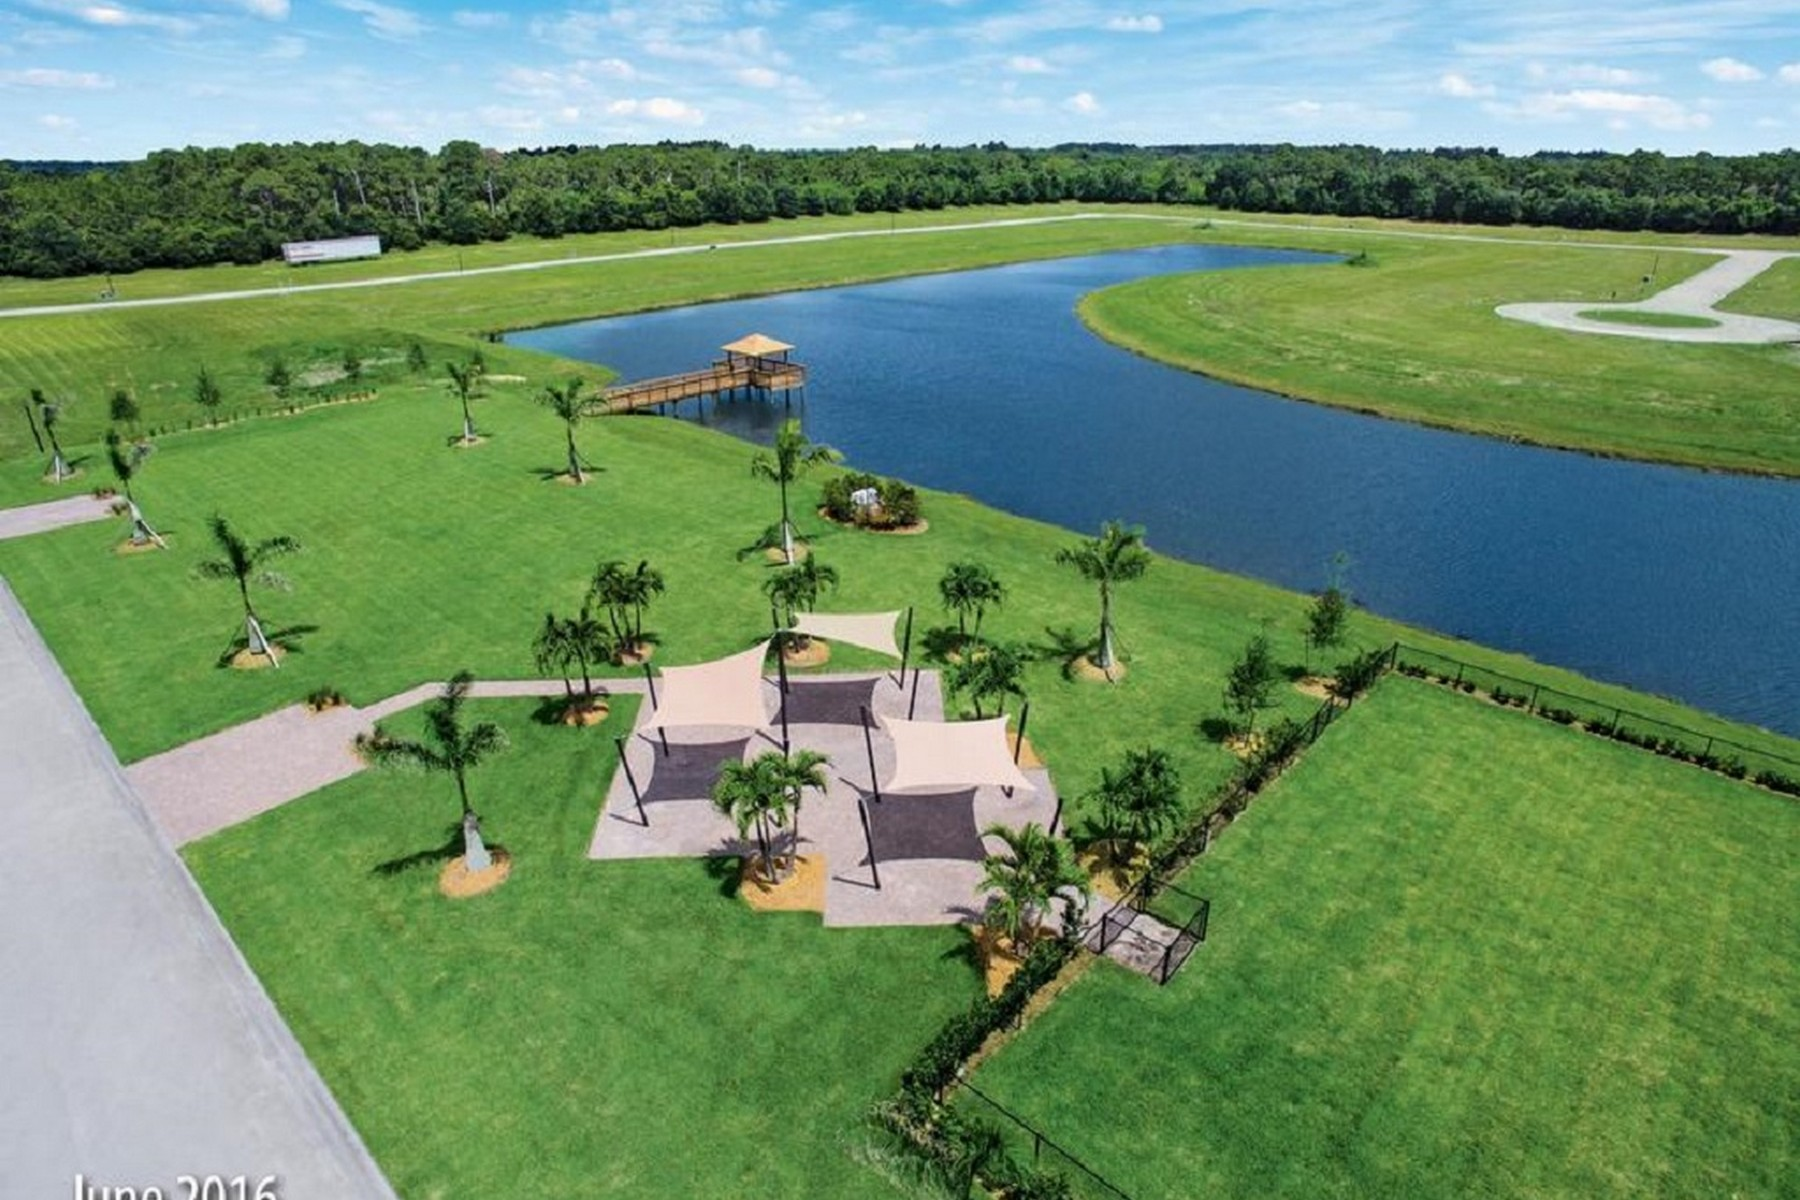 Single Family Home for Sale at Superb Home Under Construction 6149 Graysen Vero Beach, Florida, 32967 United States